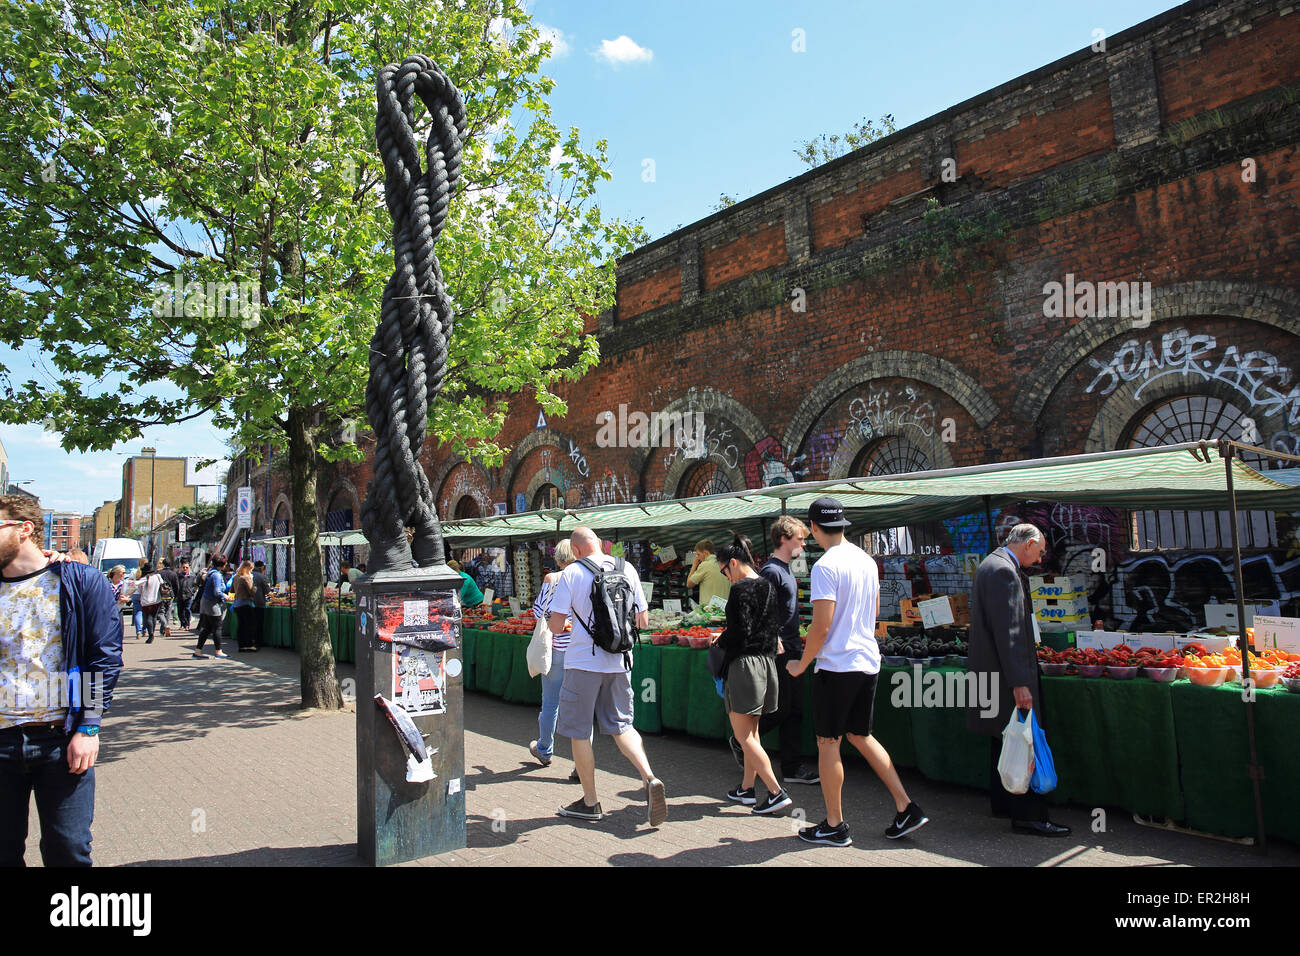 Fruit and vegetable market stalls, on Bethnal Green Road, in trendy Shoreditch, in east London on a summer's - Stock Image